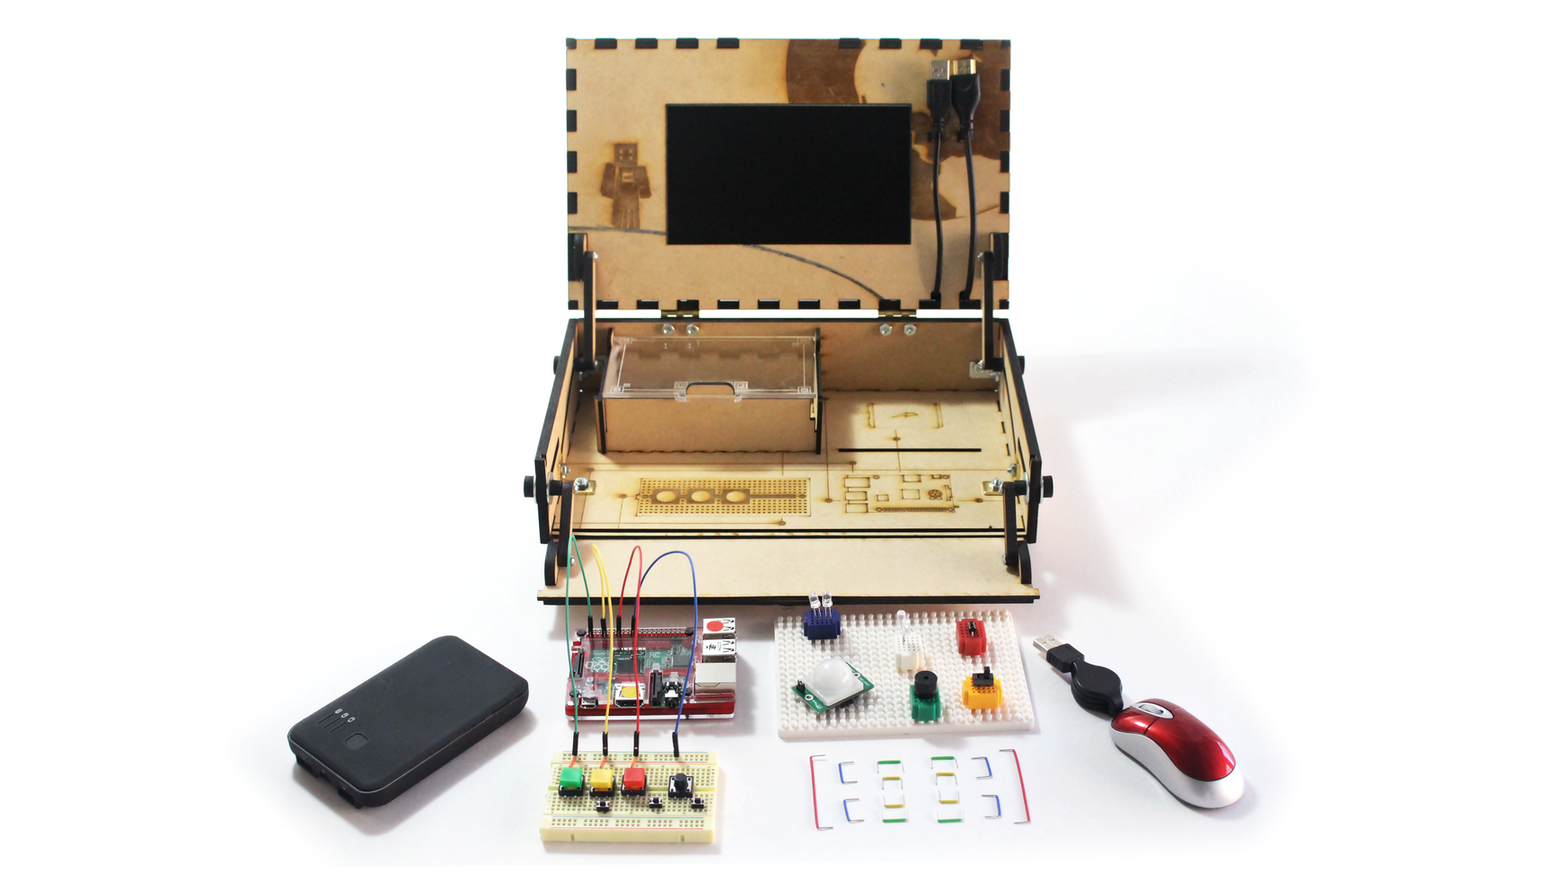 Piper Computer Kit By Kickstarter Electronic Circuit Kits Australia A Raspberry Pi For Anyone To Create And Invent With Technology Build Electronics